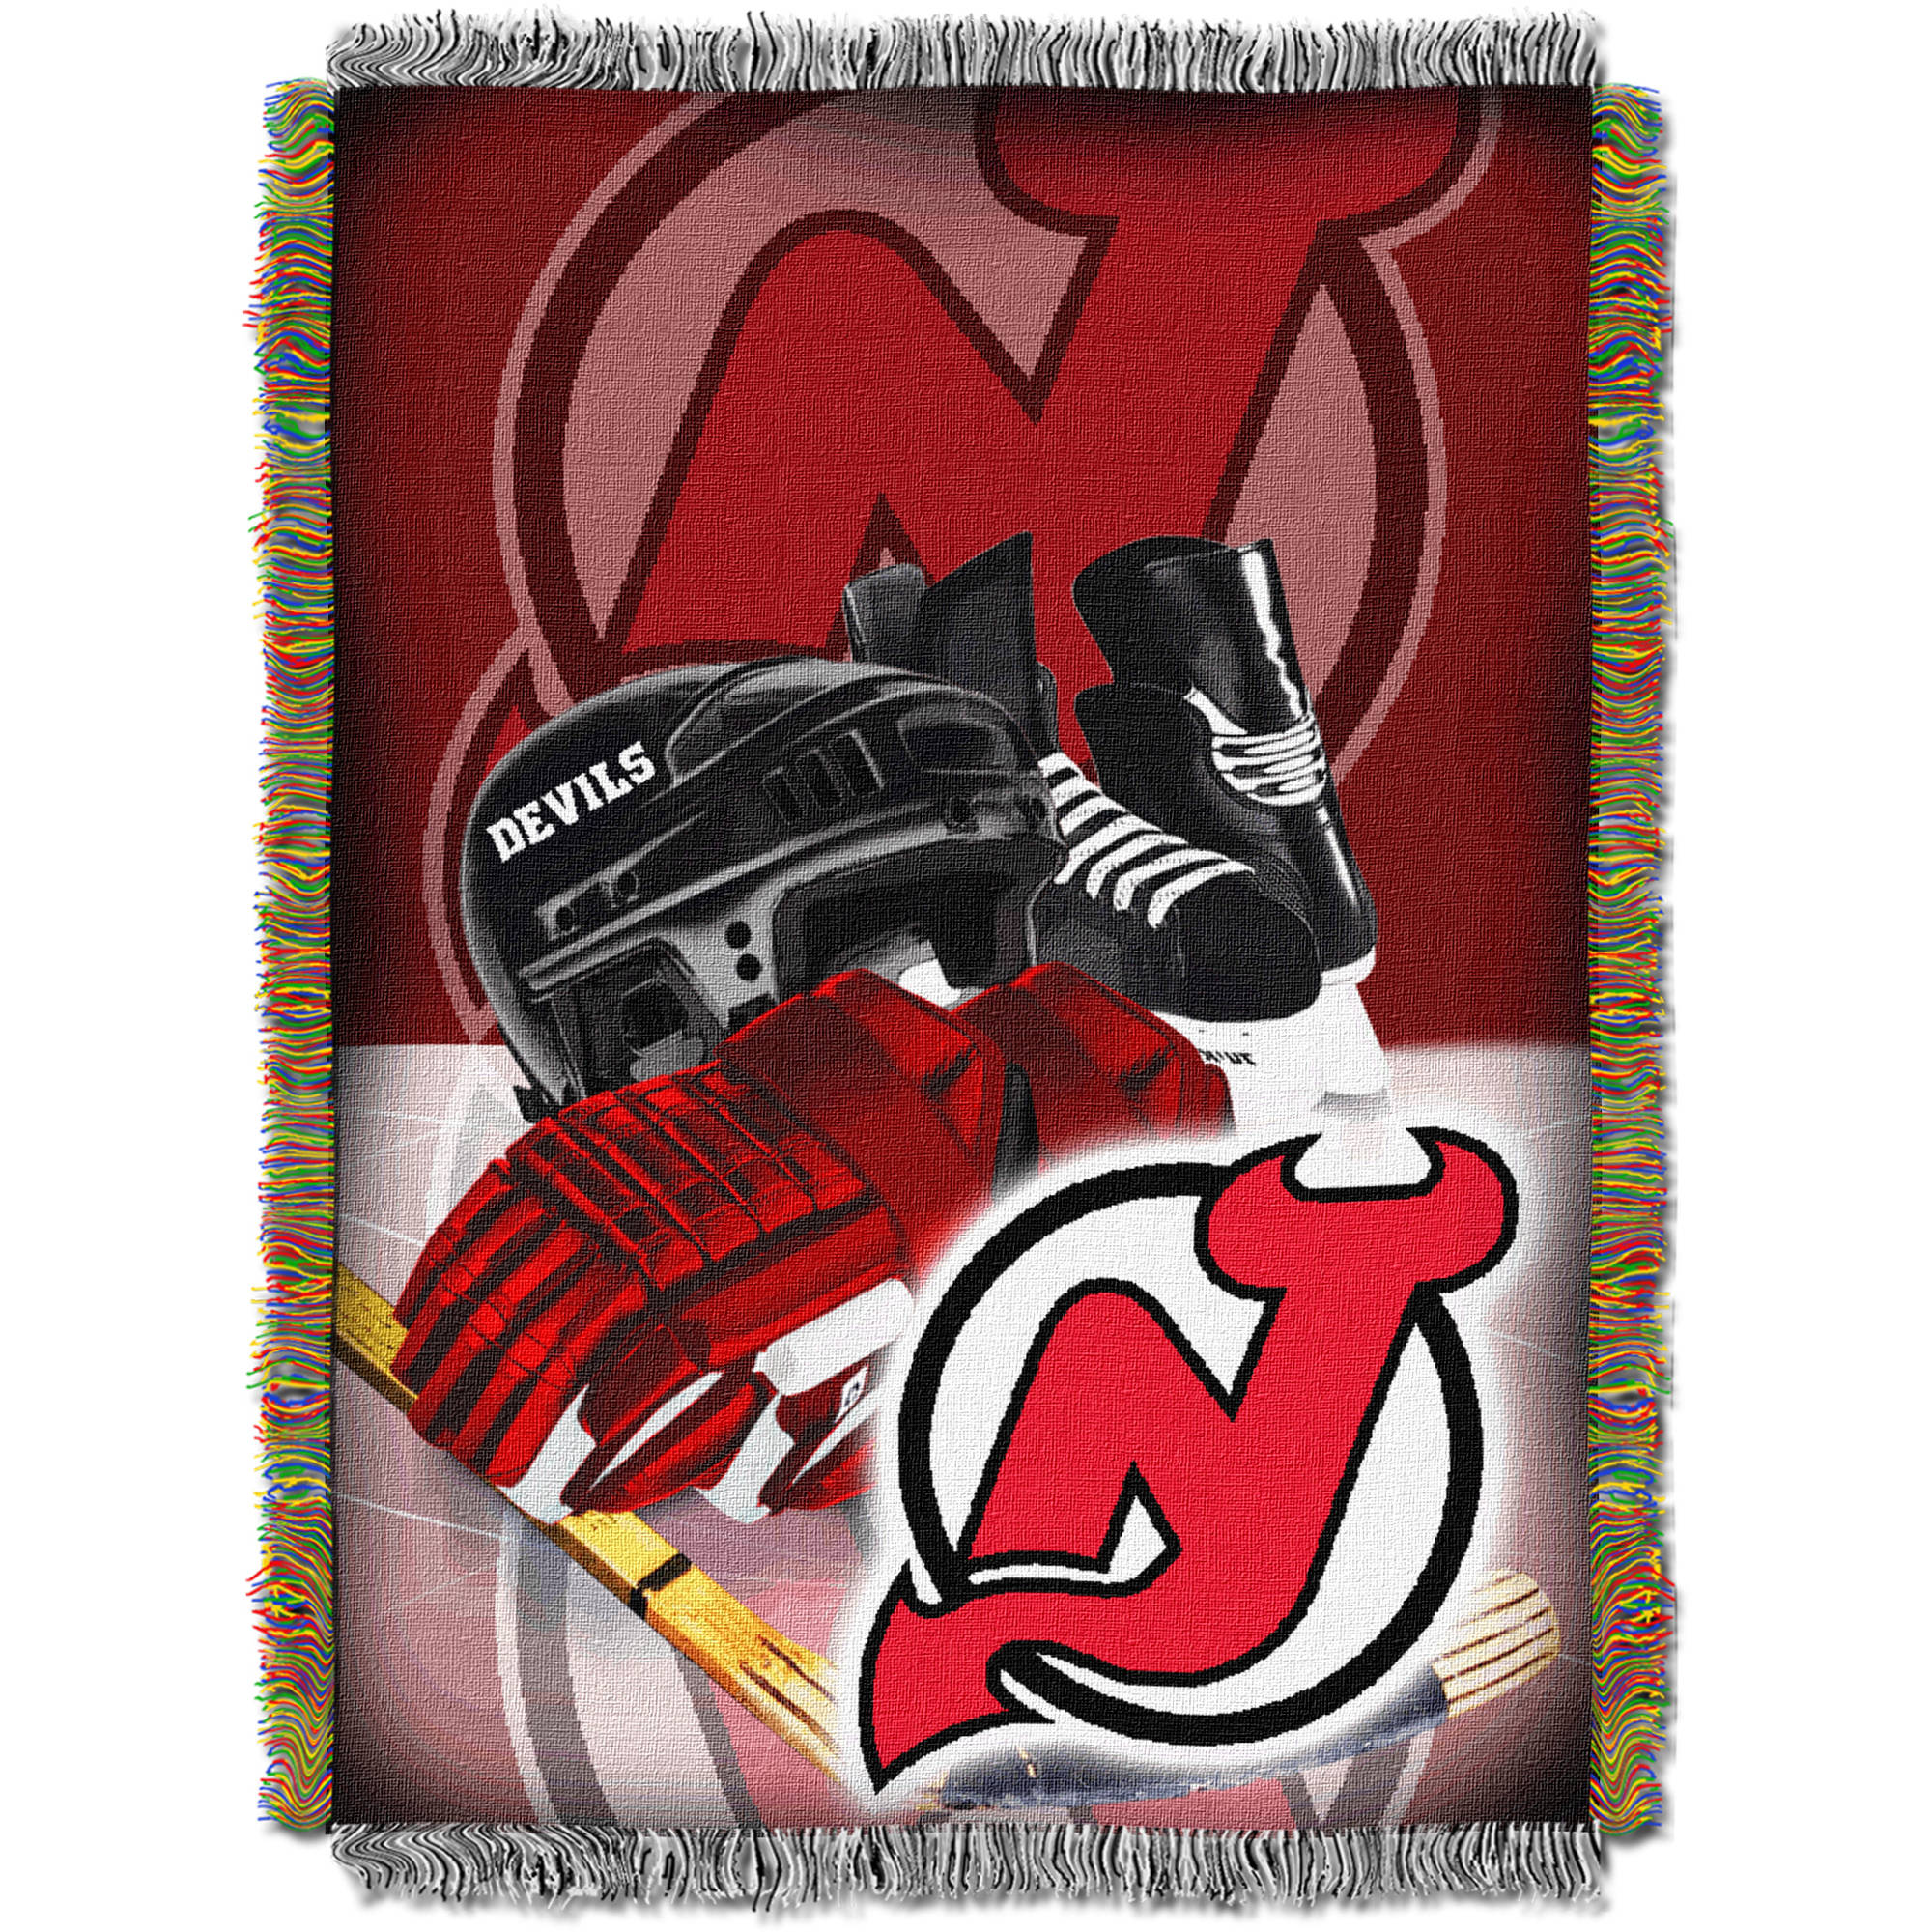 "NHL 48"" x 60"" Home Ice Advantage Series Tapestry Throw, Devils"